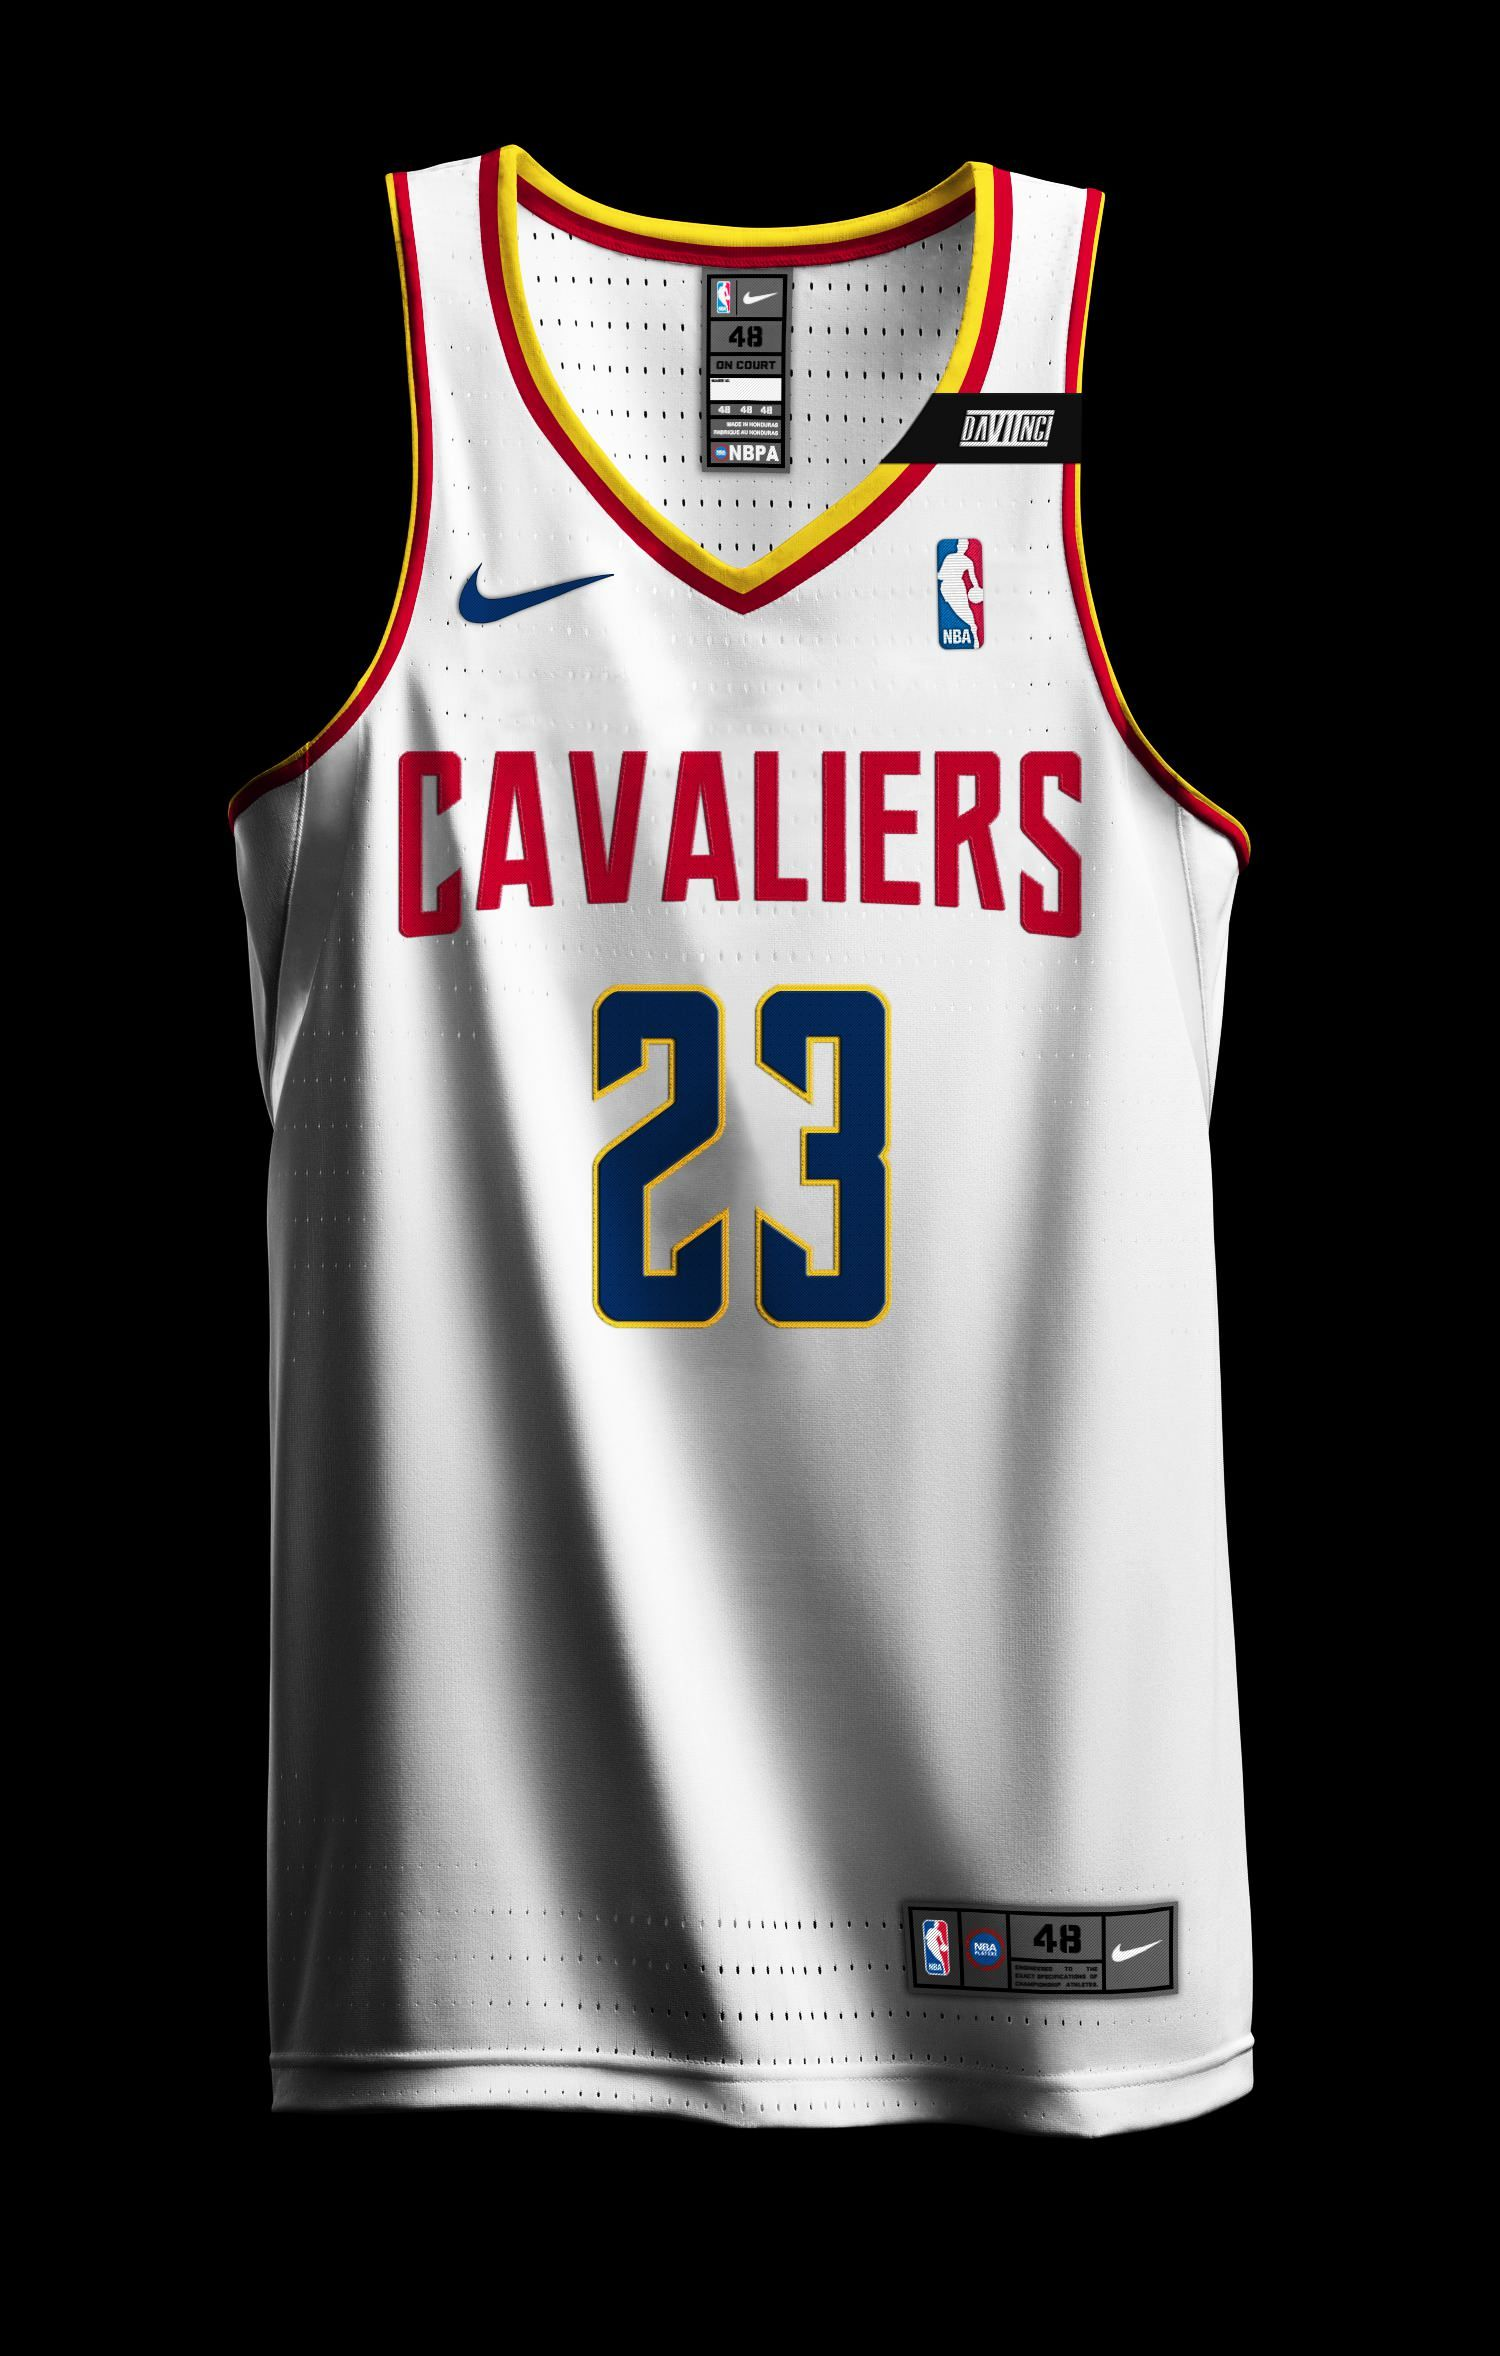 Nba X Nike Redesign Project Miami Heat City Edition Added 1 2 Page 7 Concepts Chris Creamer S Sport Jersey Design Basketball Uniforms Design Miami Heat